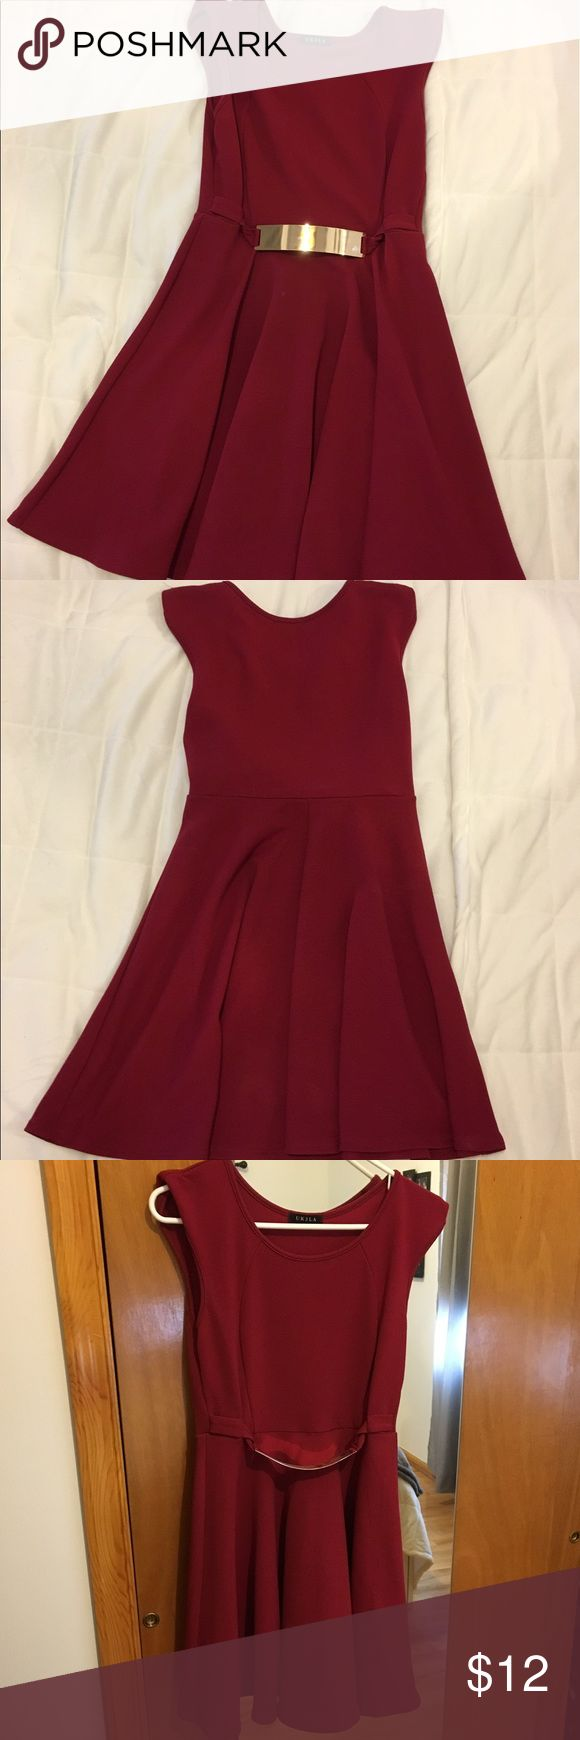 Burgundy Cocktail Dress Worn once as a wedding guest dress. Super cute to pair with some nude heels! Dresses Wedding